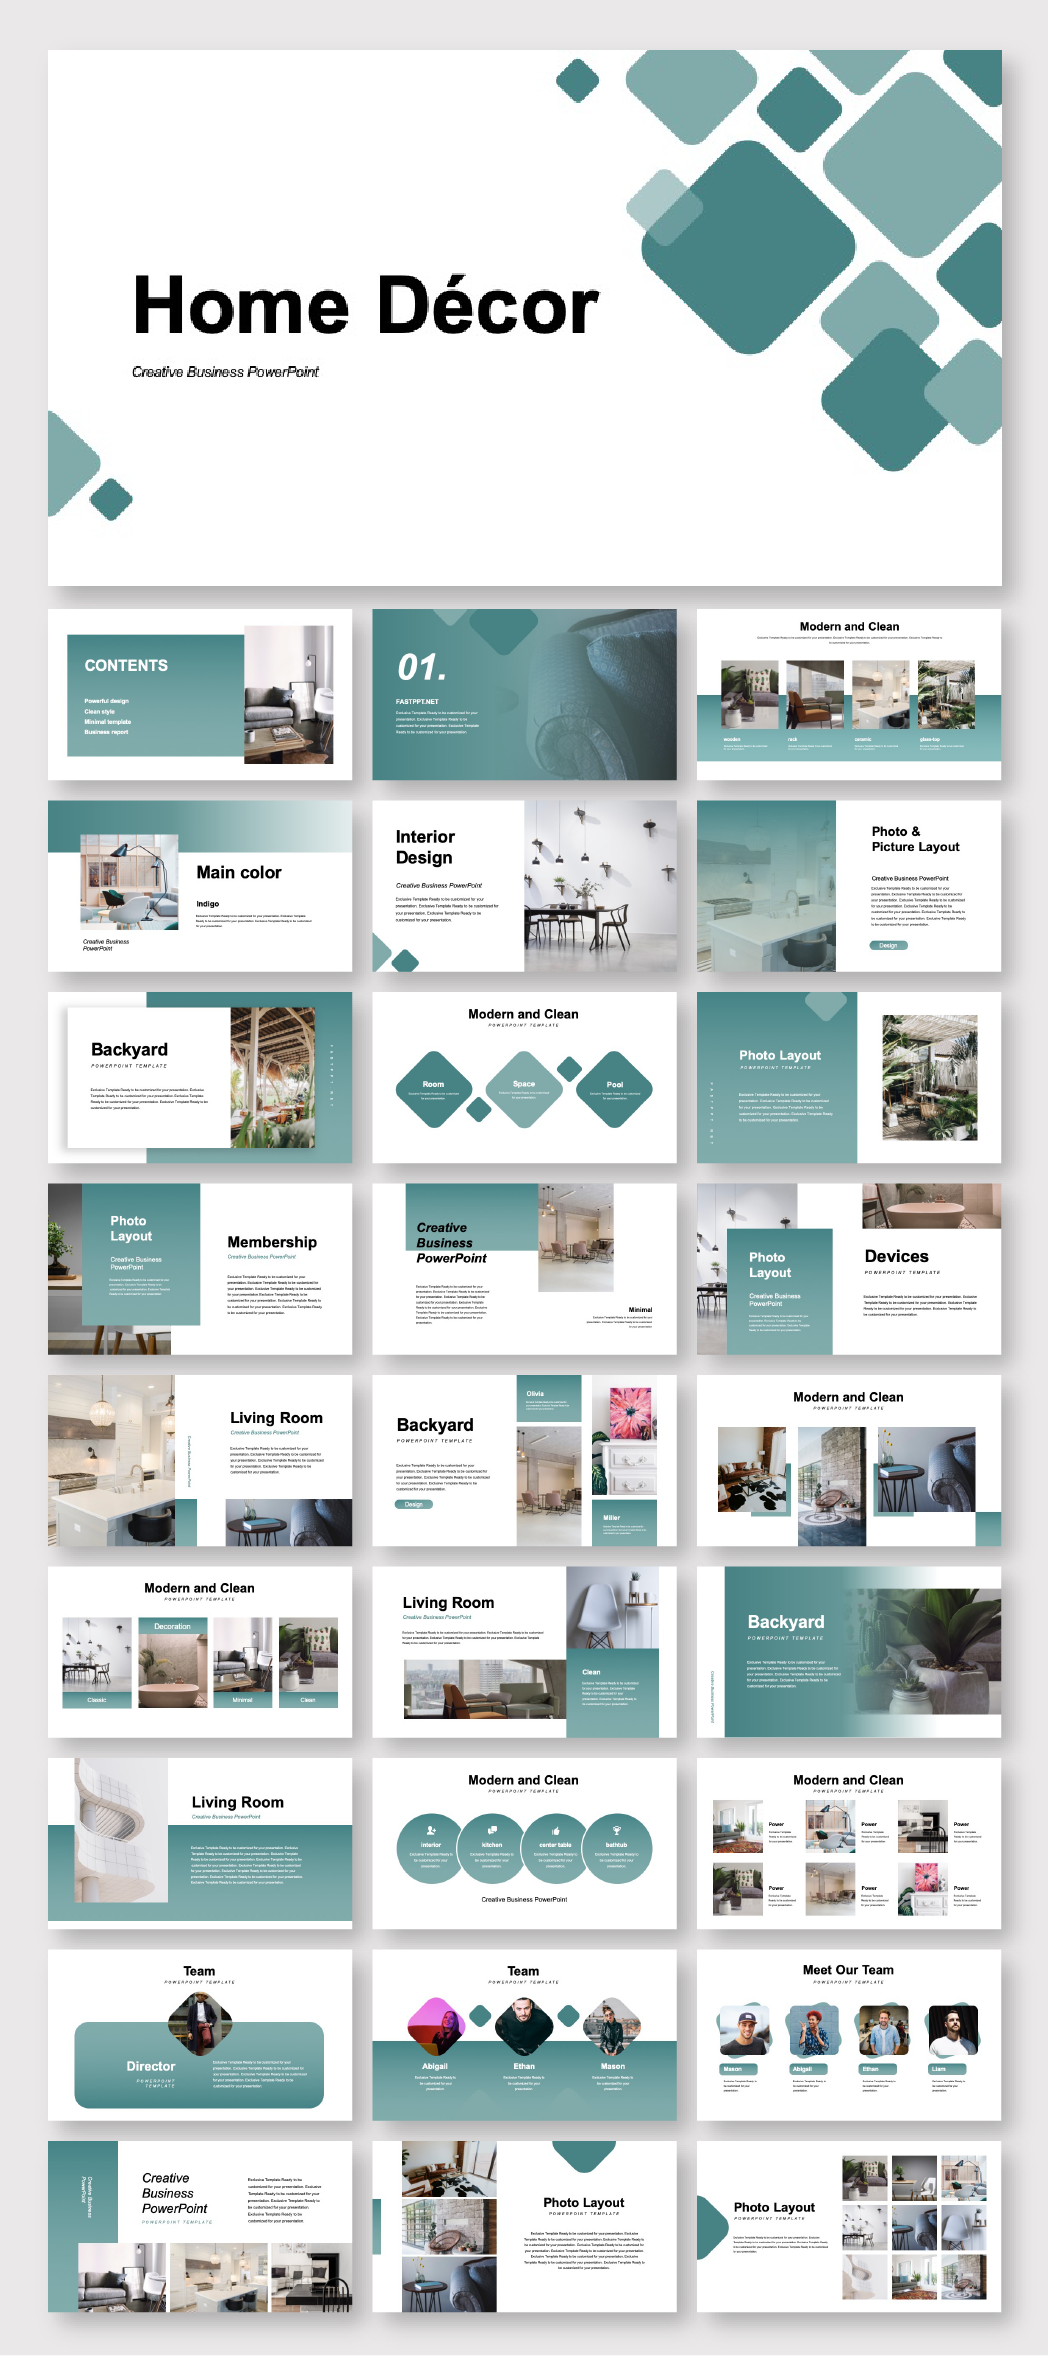 Creative Home Decor Presentation Template – Original and high quality PowerPoint Templates download